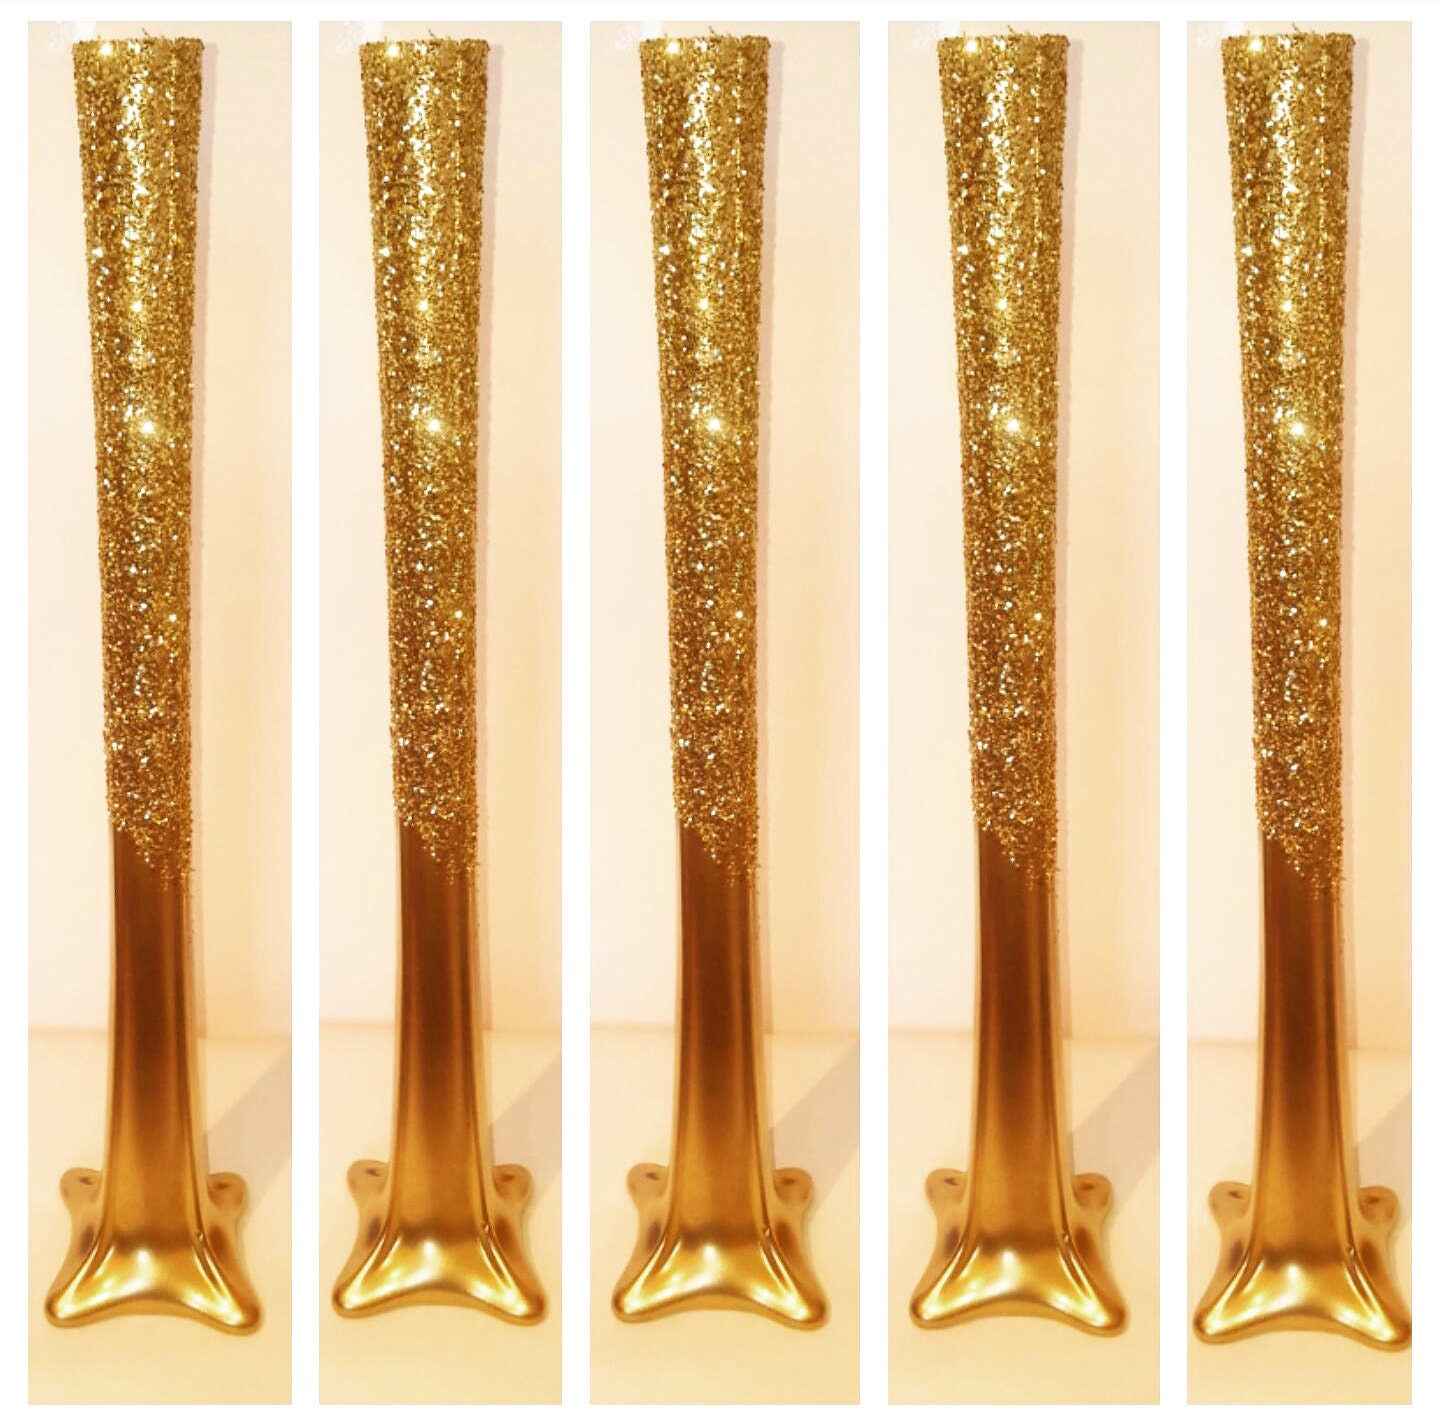 Set of 5 20 tall tower vase gold tower vases glitter zoom reviewsmspy